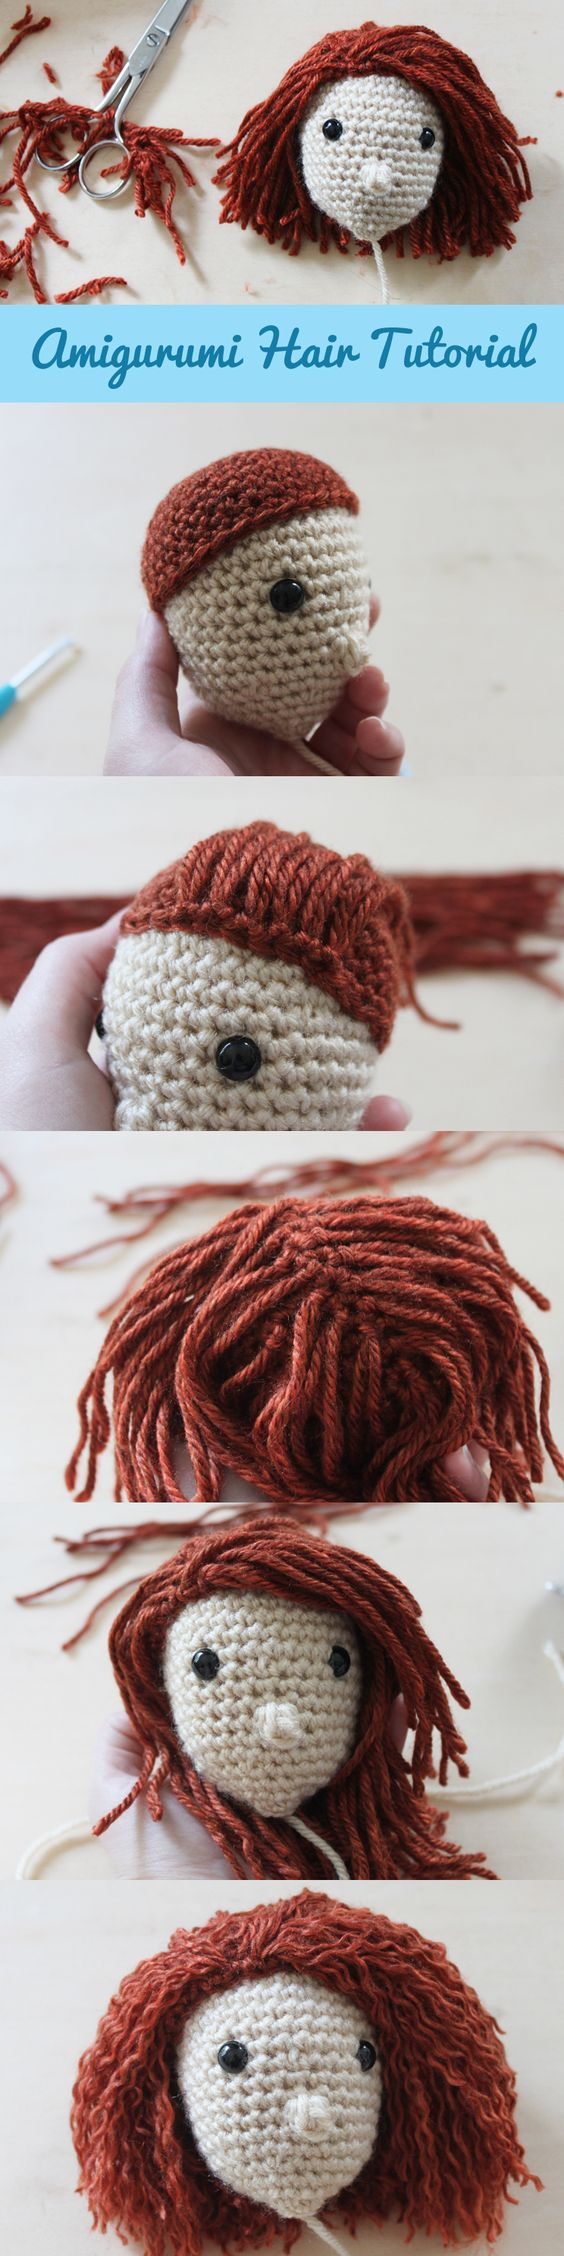 Amigurumi Curly Hair Tutorial : Amigurumi tutorial, Crochet and Tutorials on Pinterest